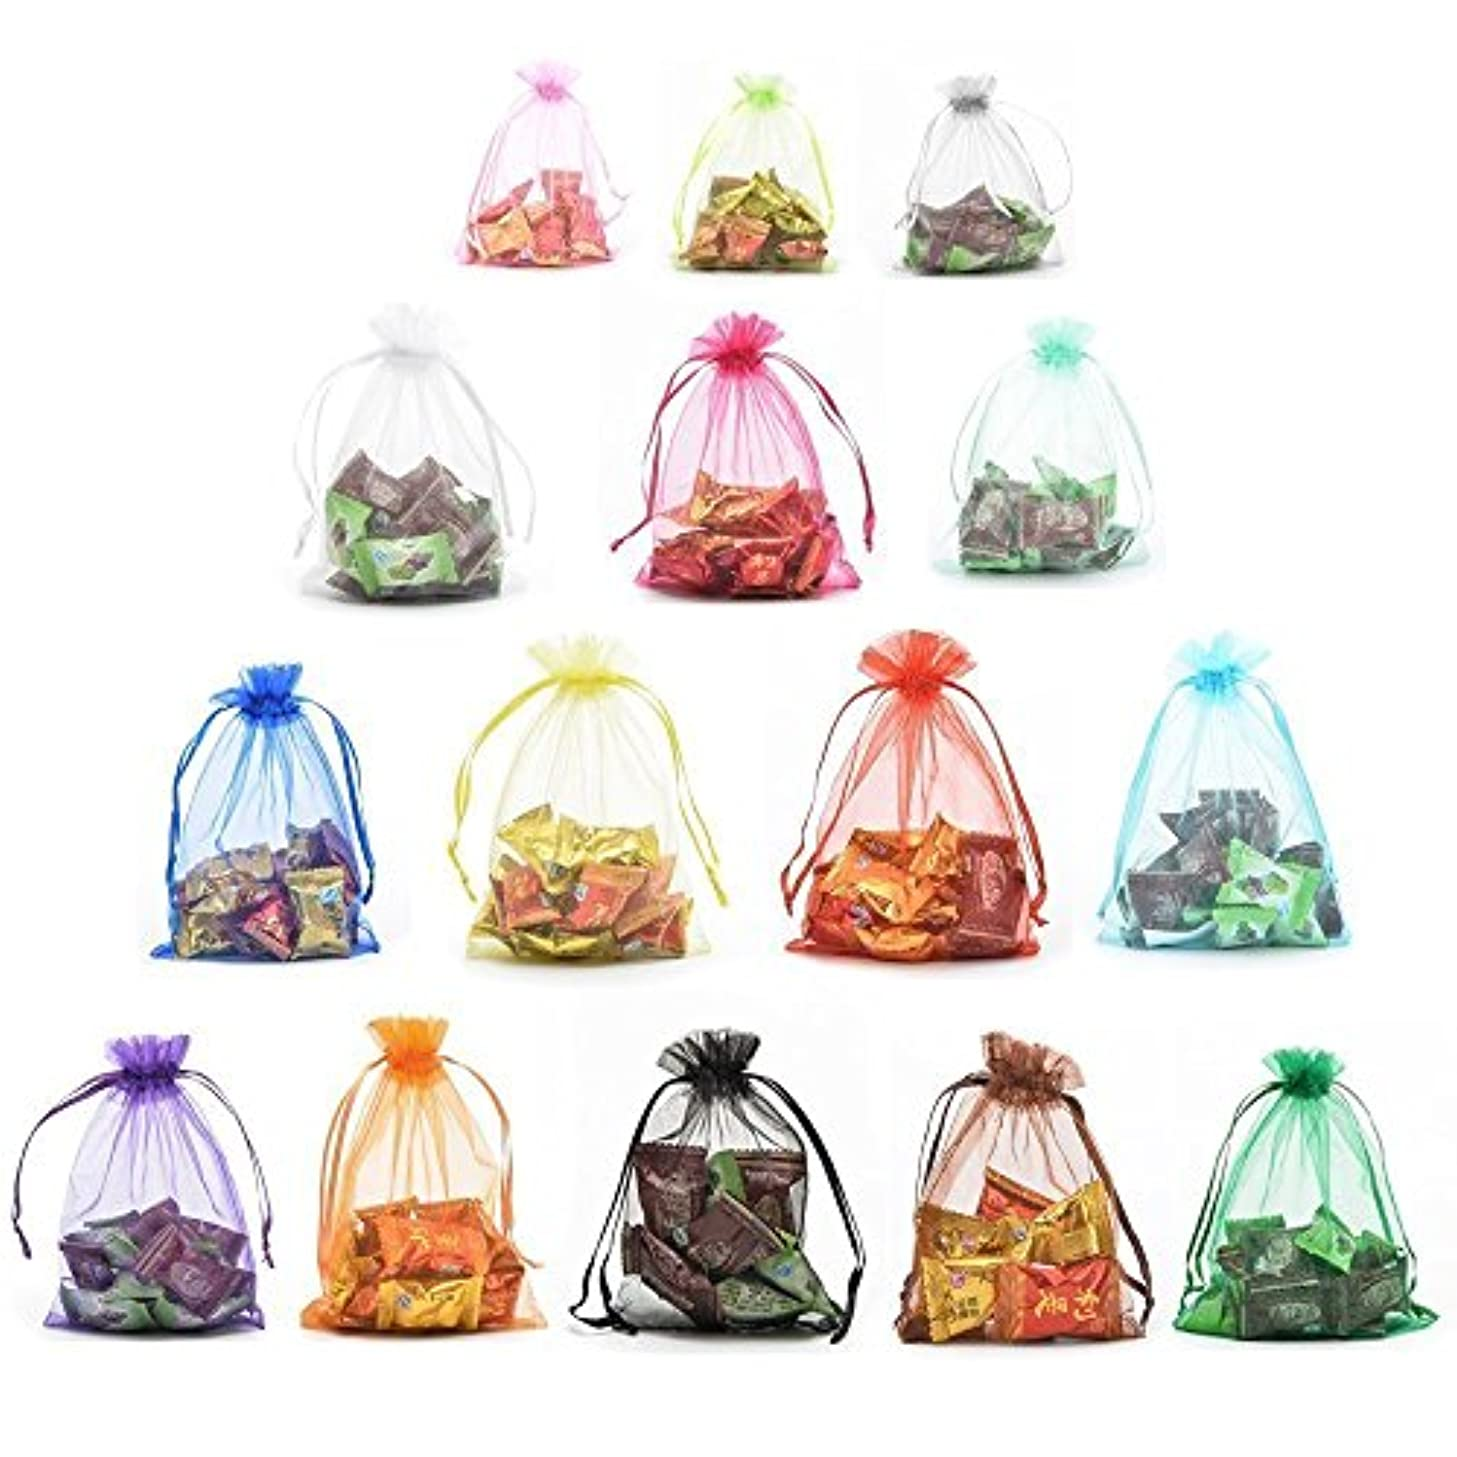 Akak Store 100pc 13 x 18 Cm /5 x 7 Inches Beautiful Transparent Mix 10 Colors Organza Drawstring Pouches Candy Jewelry Party Wedding Favor Gift Bags Pouch Bags